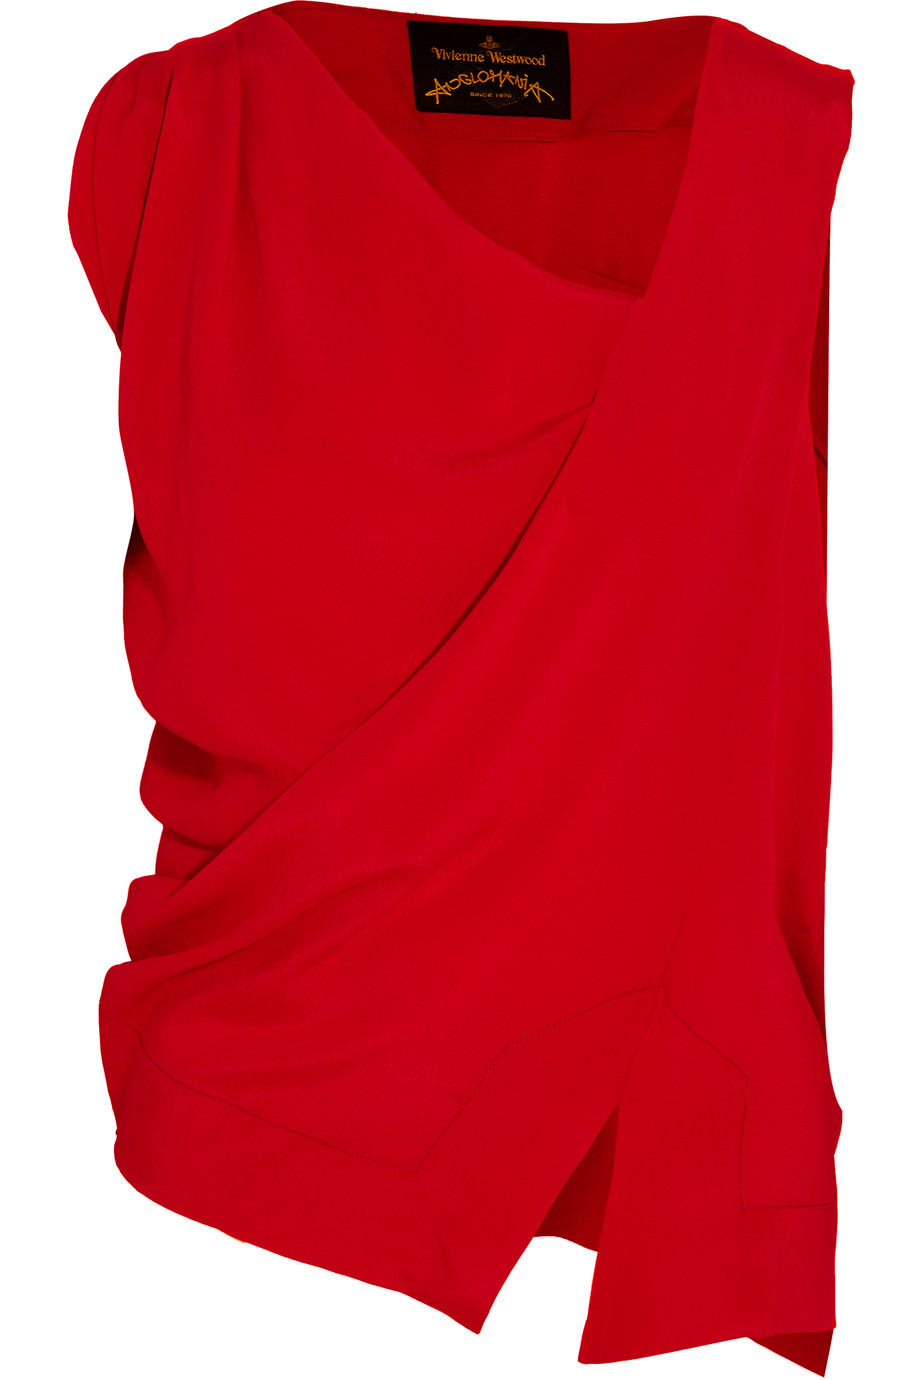 Tine Draped Crepe Top, Vivienne Westwood Anglomania, Red, Women's, Size: 42